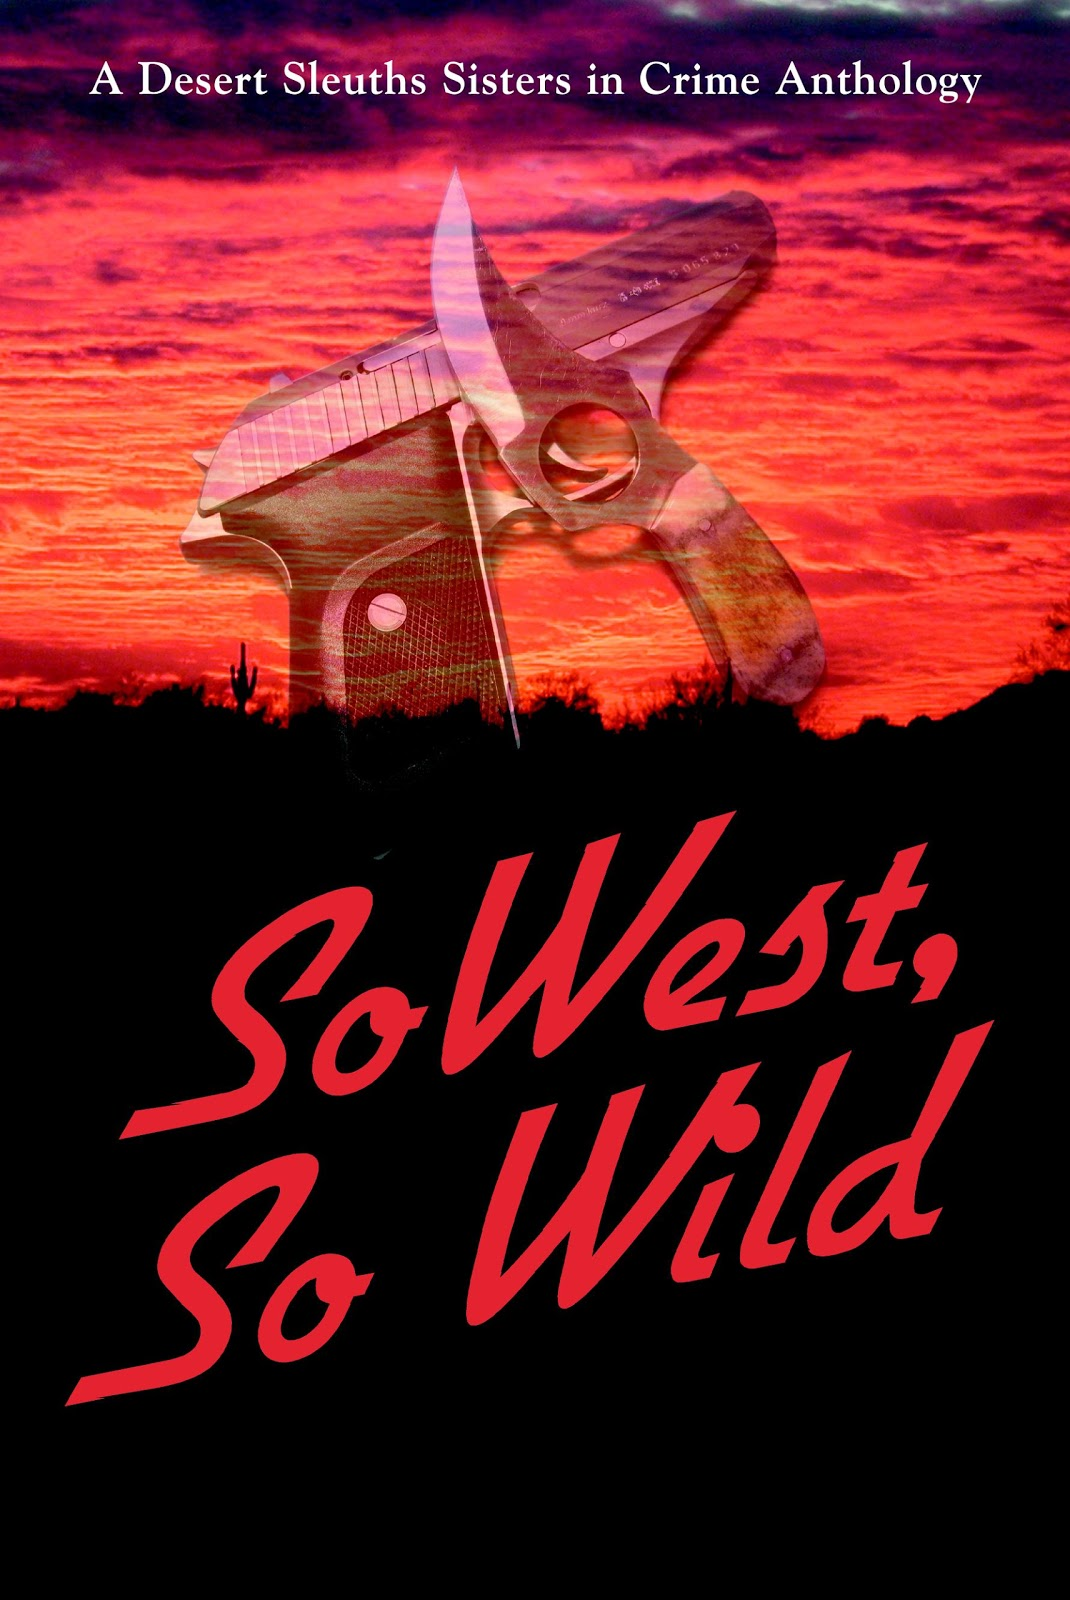 Desert Sleuths For Authors @ The Teague  Sowest, So Wild